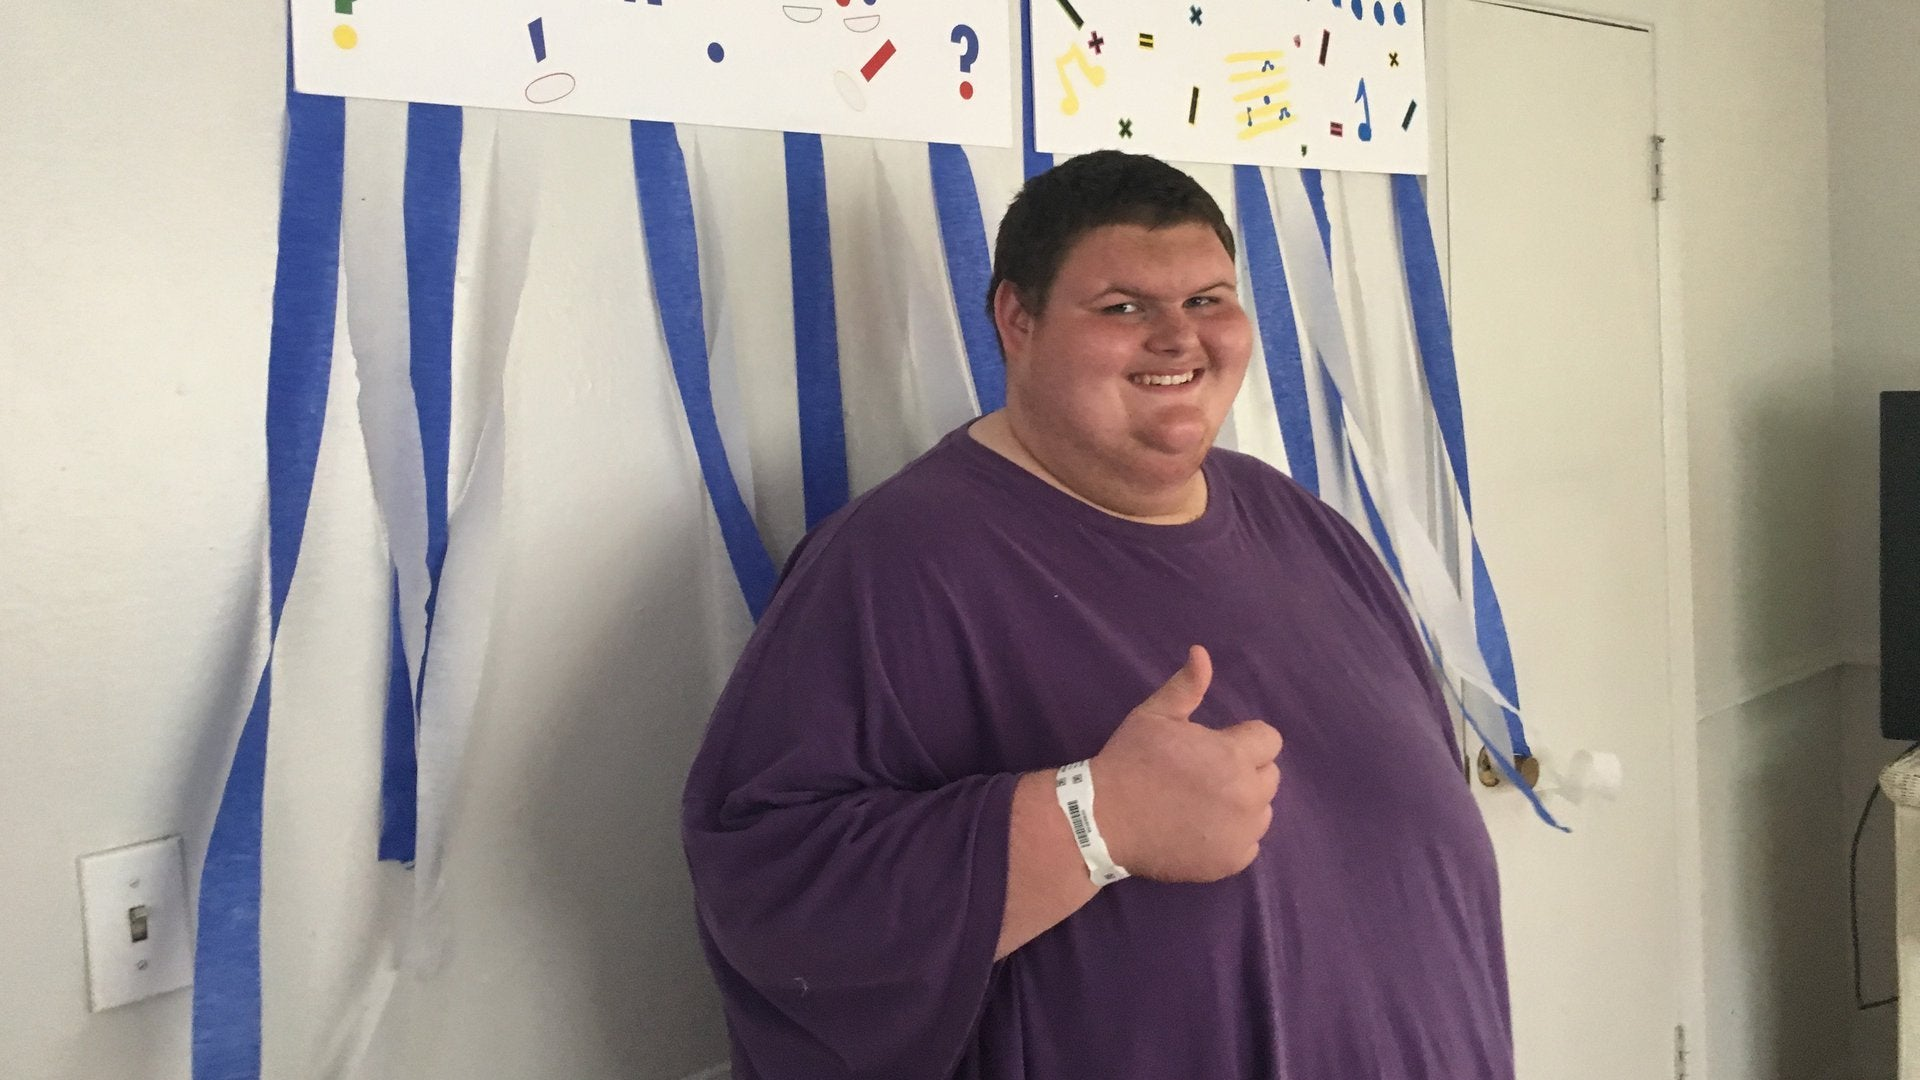 The 685-Lb. Teen: Supersized